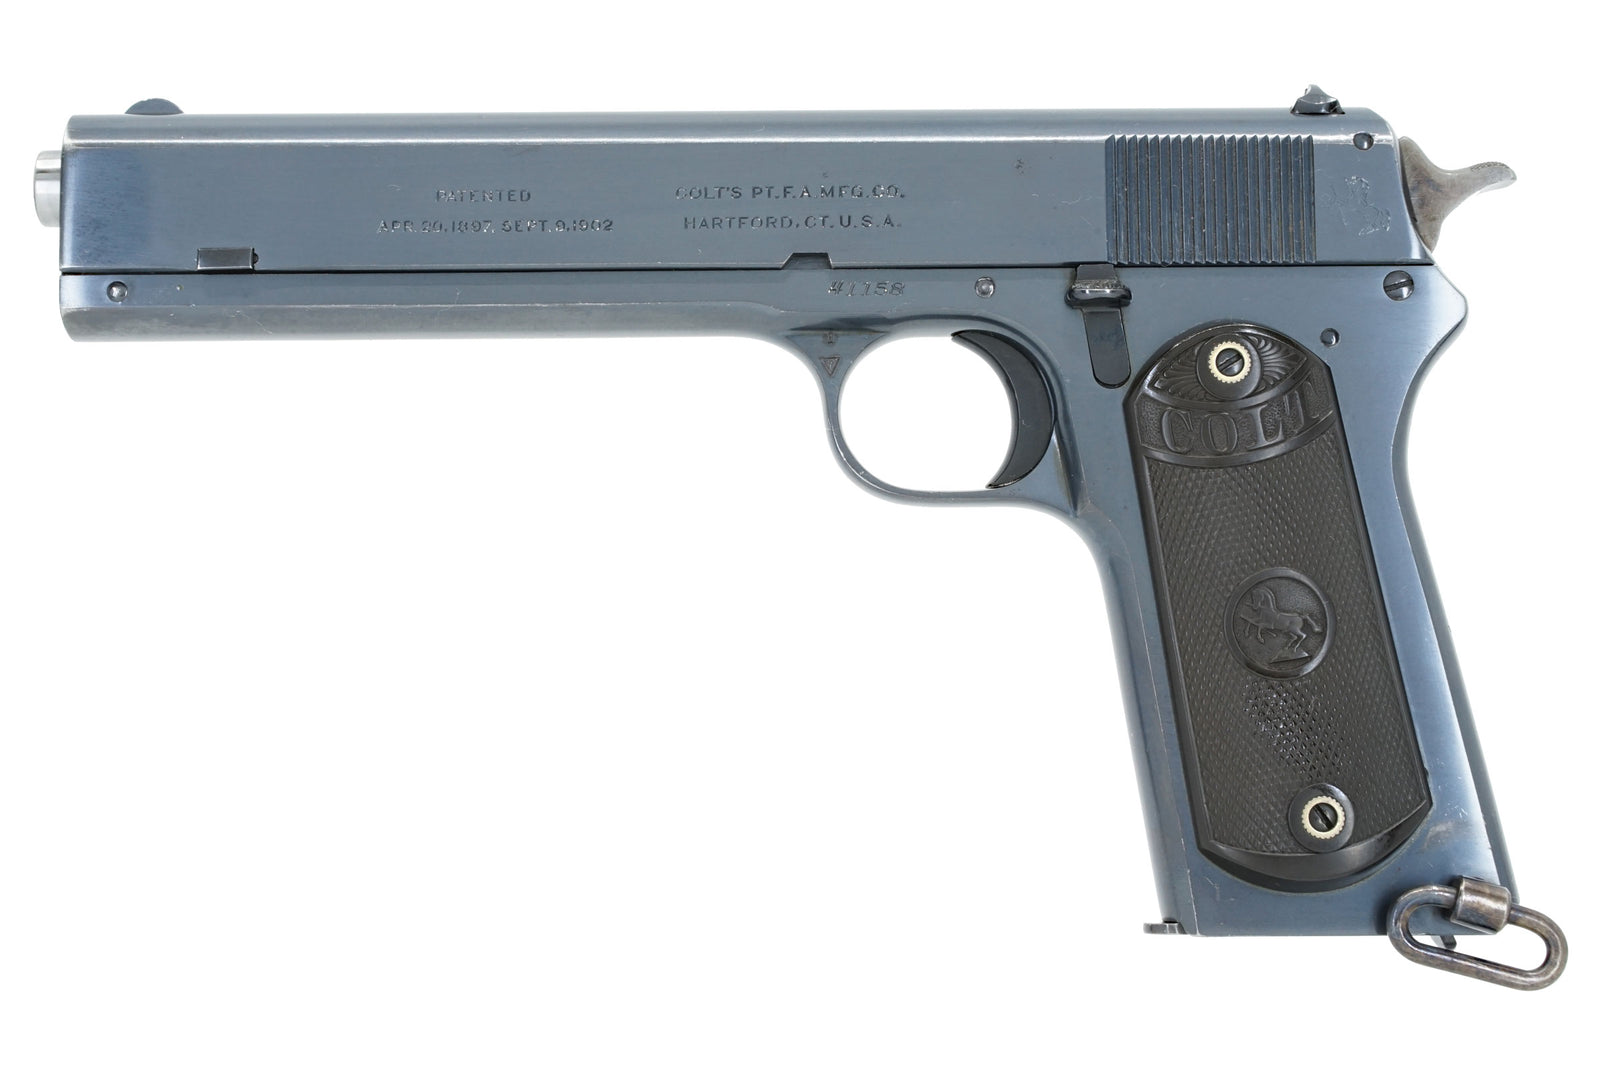 Colt Model 1902 Military and 1902 Sporting - Old Colt